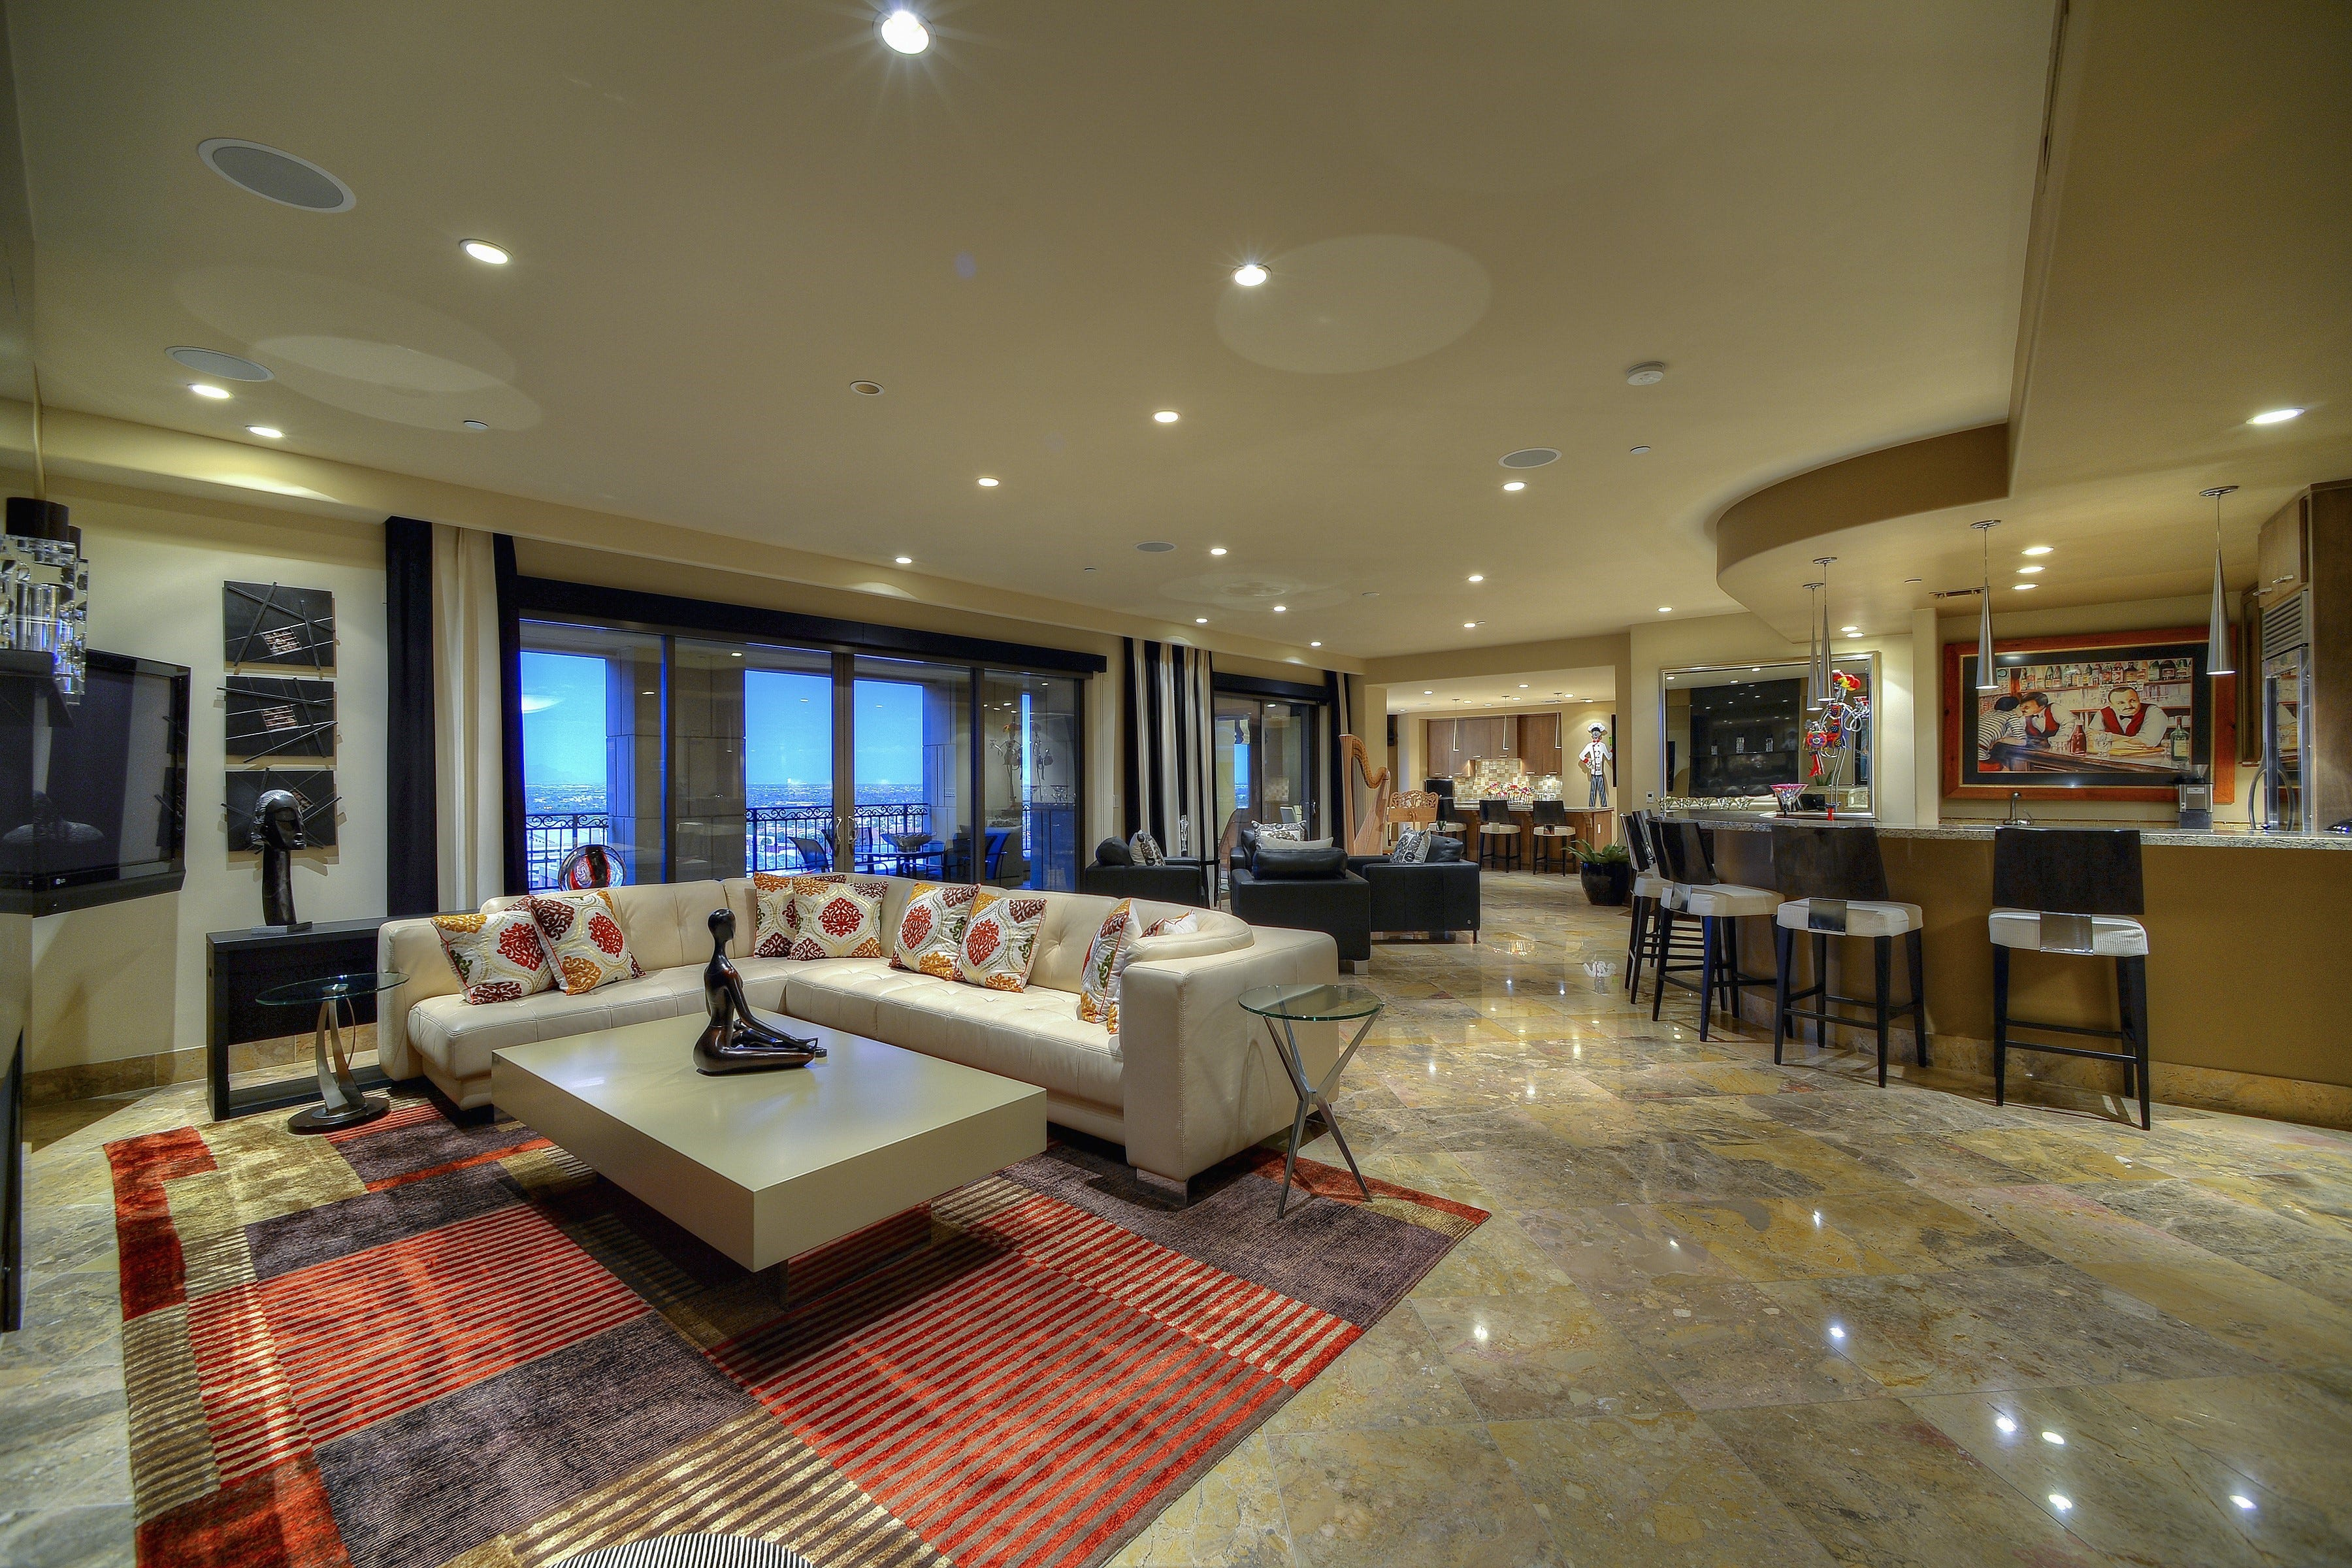 Luxury homes: $2.6M Scottsdale condo features a theater room